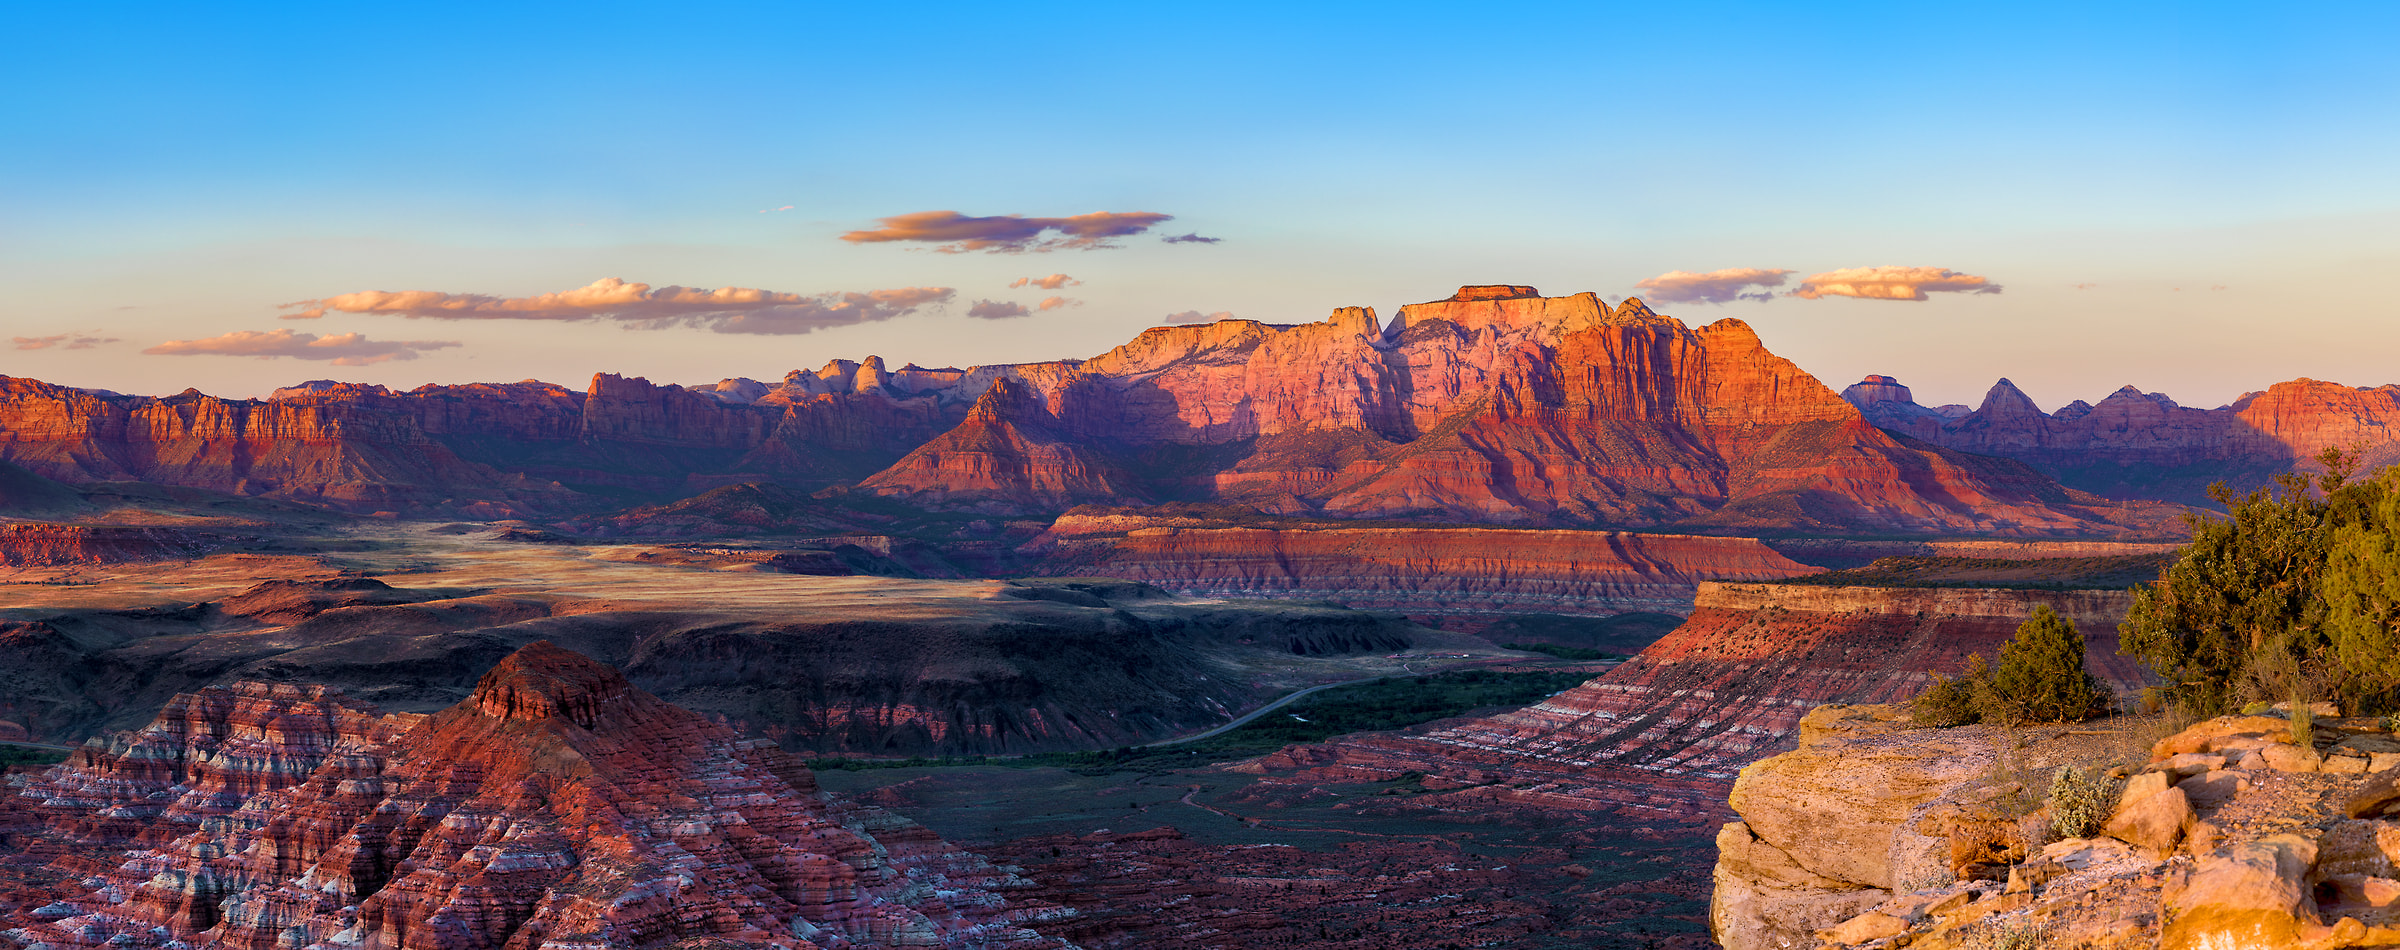 110 megapixels! A very high resolution, large-format VAST photo print of a Utah landscape; photograph created by Jim Tarpo in Zion National Park